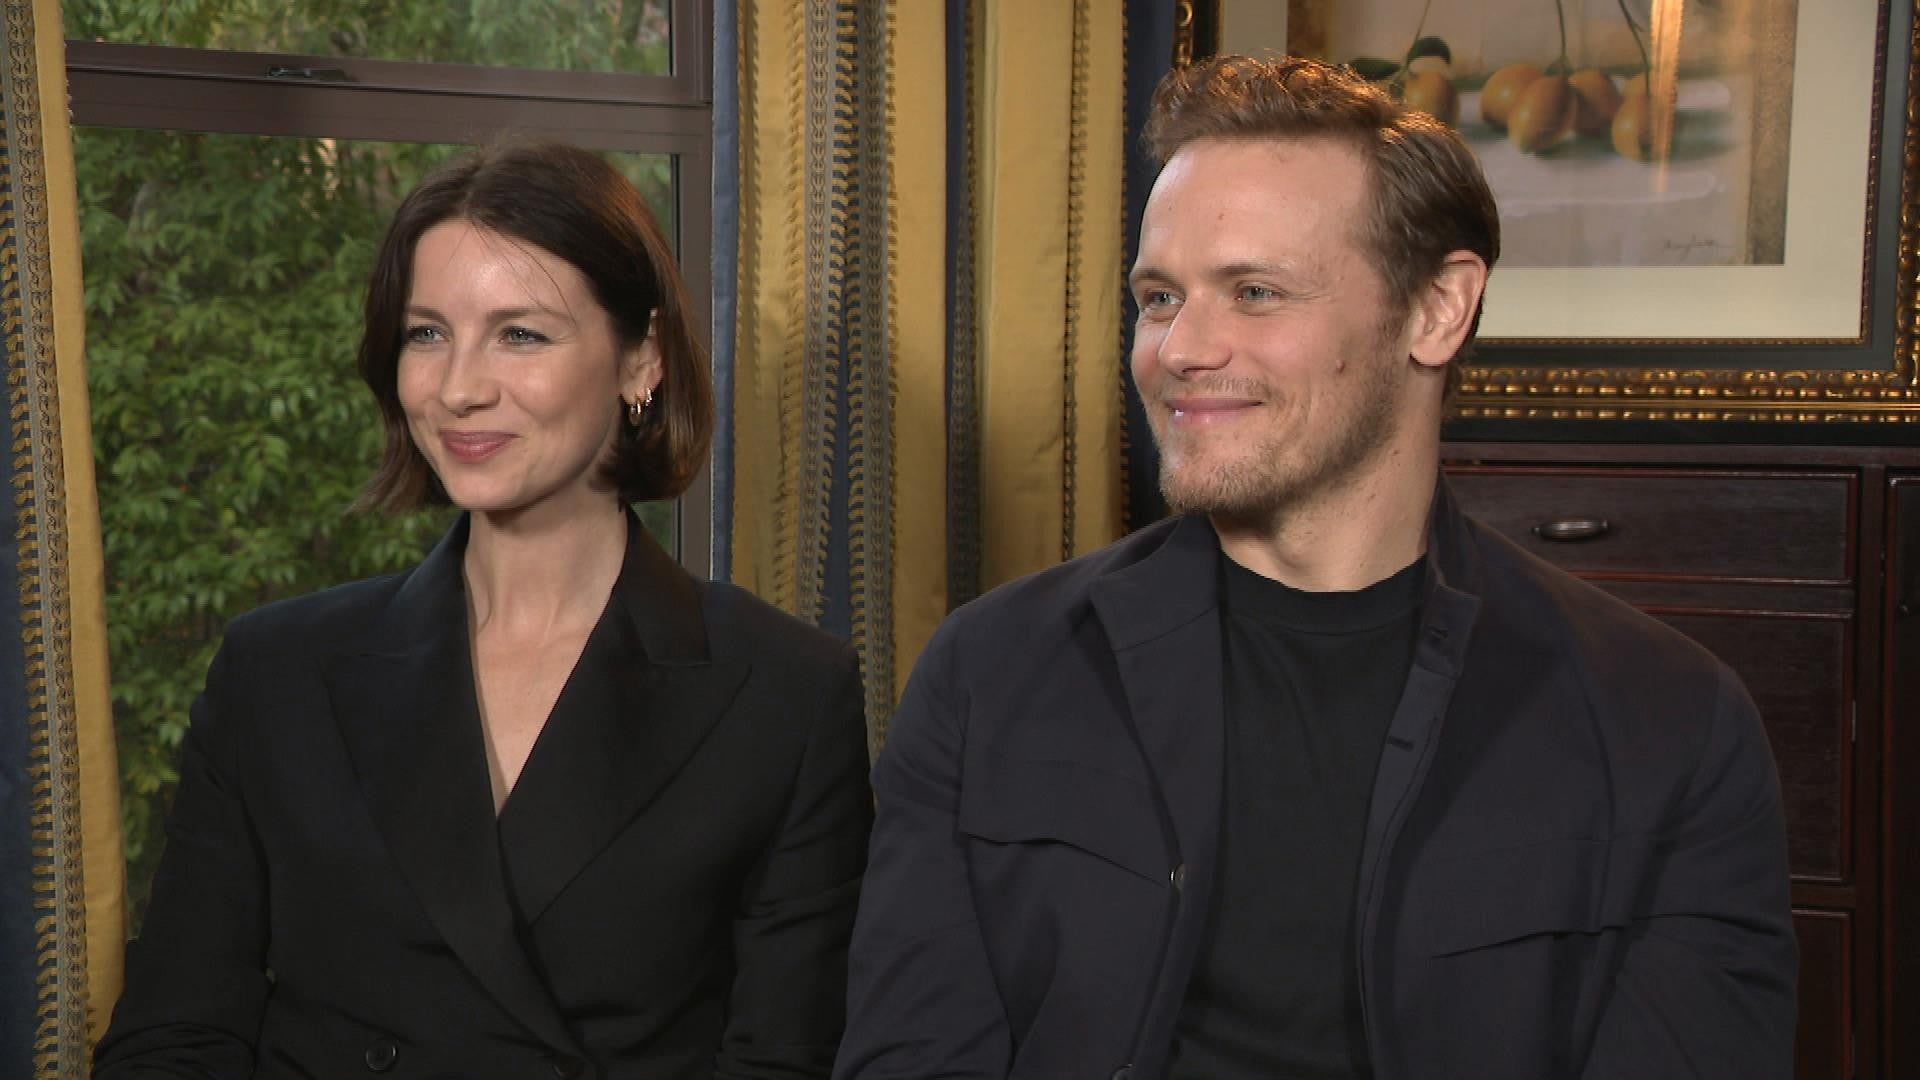 Outlander Caitriona Balfe And Sam Heughan On How Claire And Jamie S Love Deepens In Season 5 Exclusive Entertainment Tonight